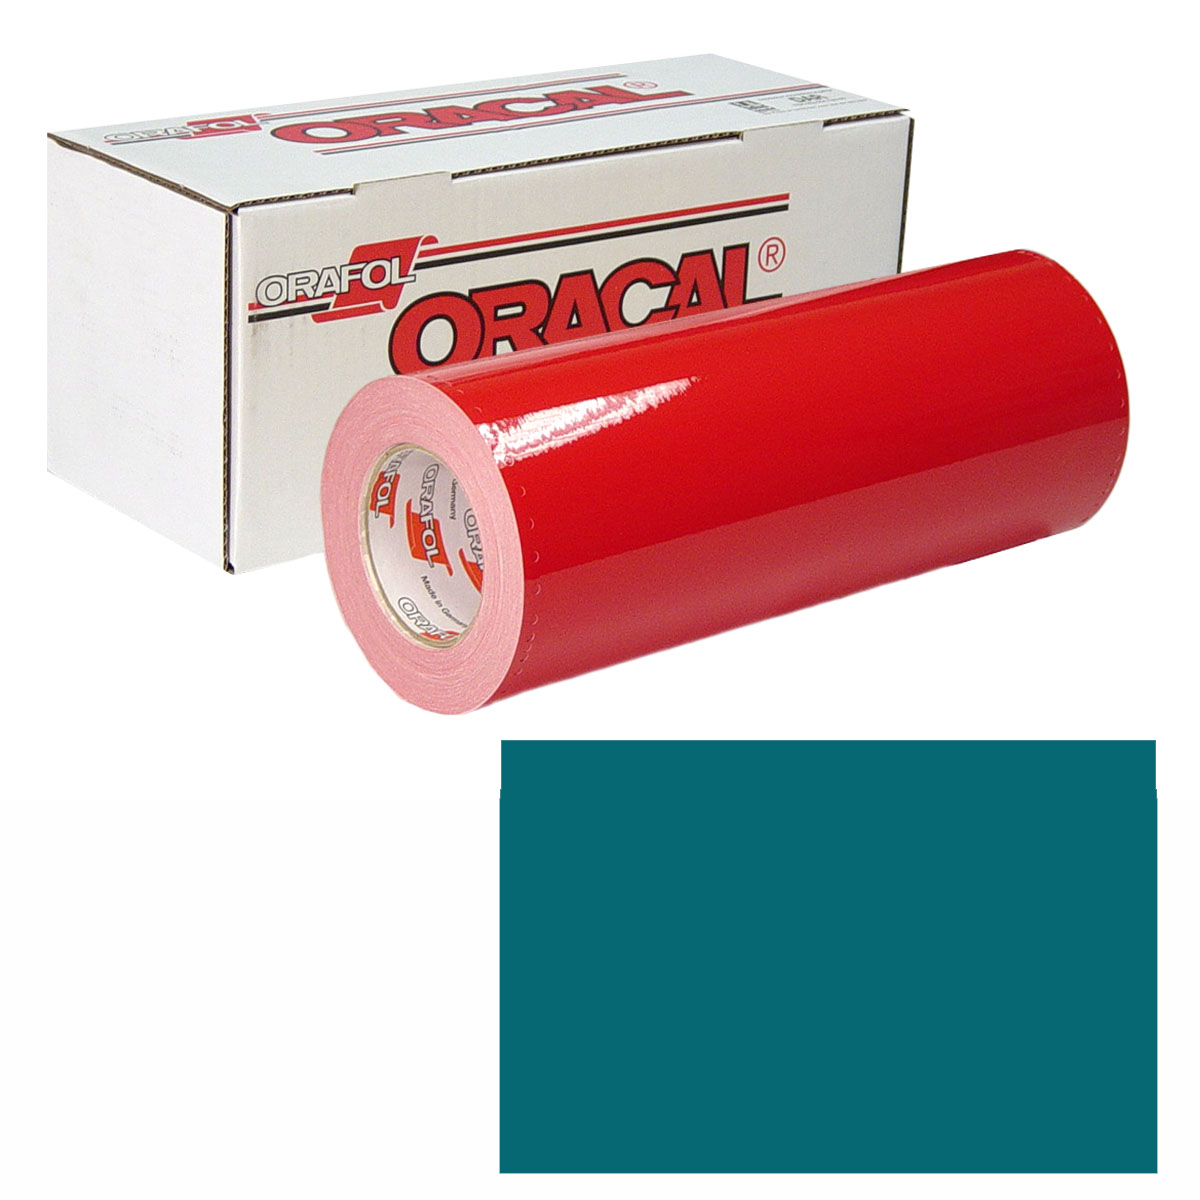 ORACAL 951M Unp 48in X 10yd 637 Teal Metallic